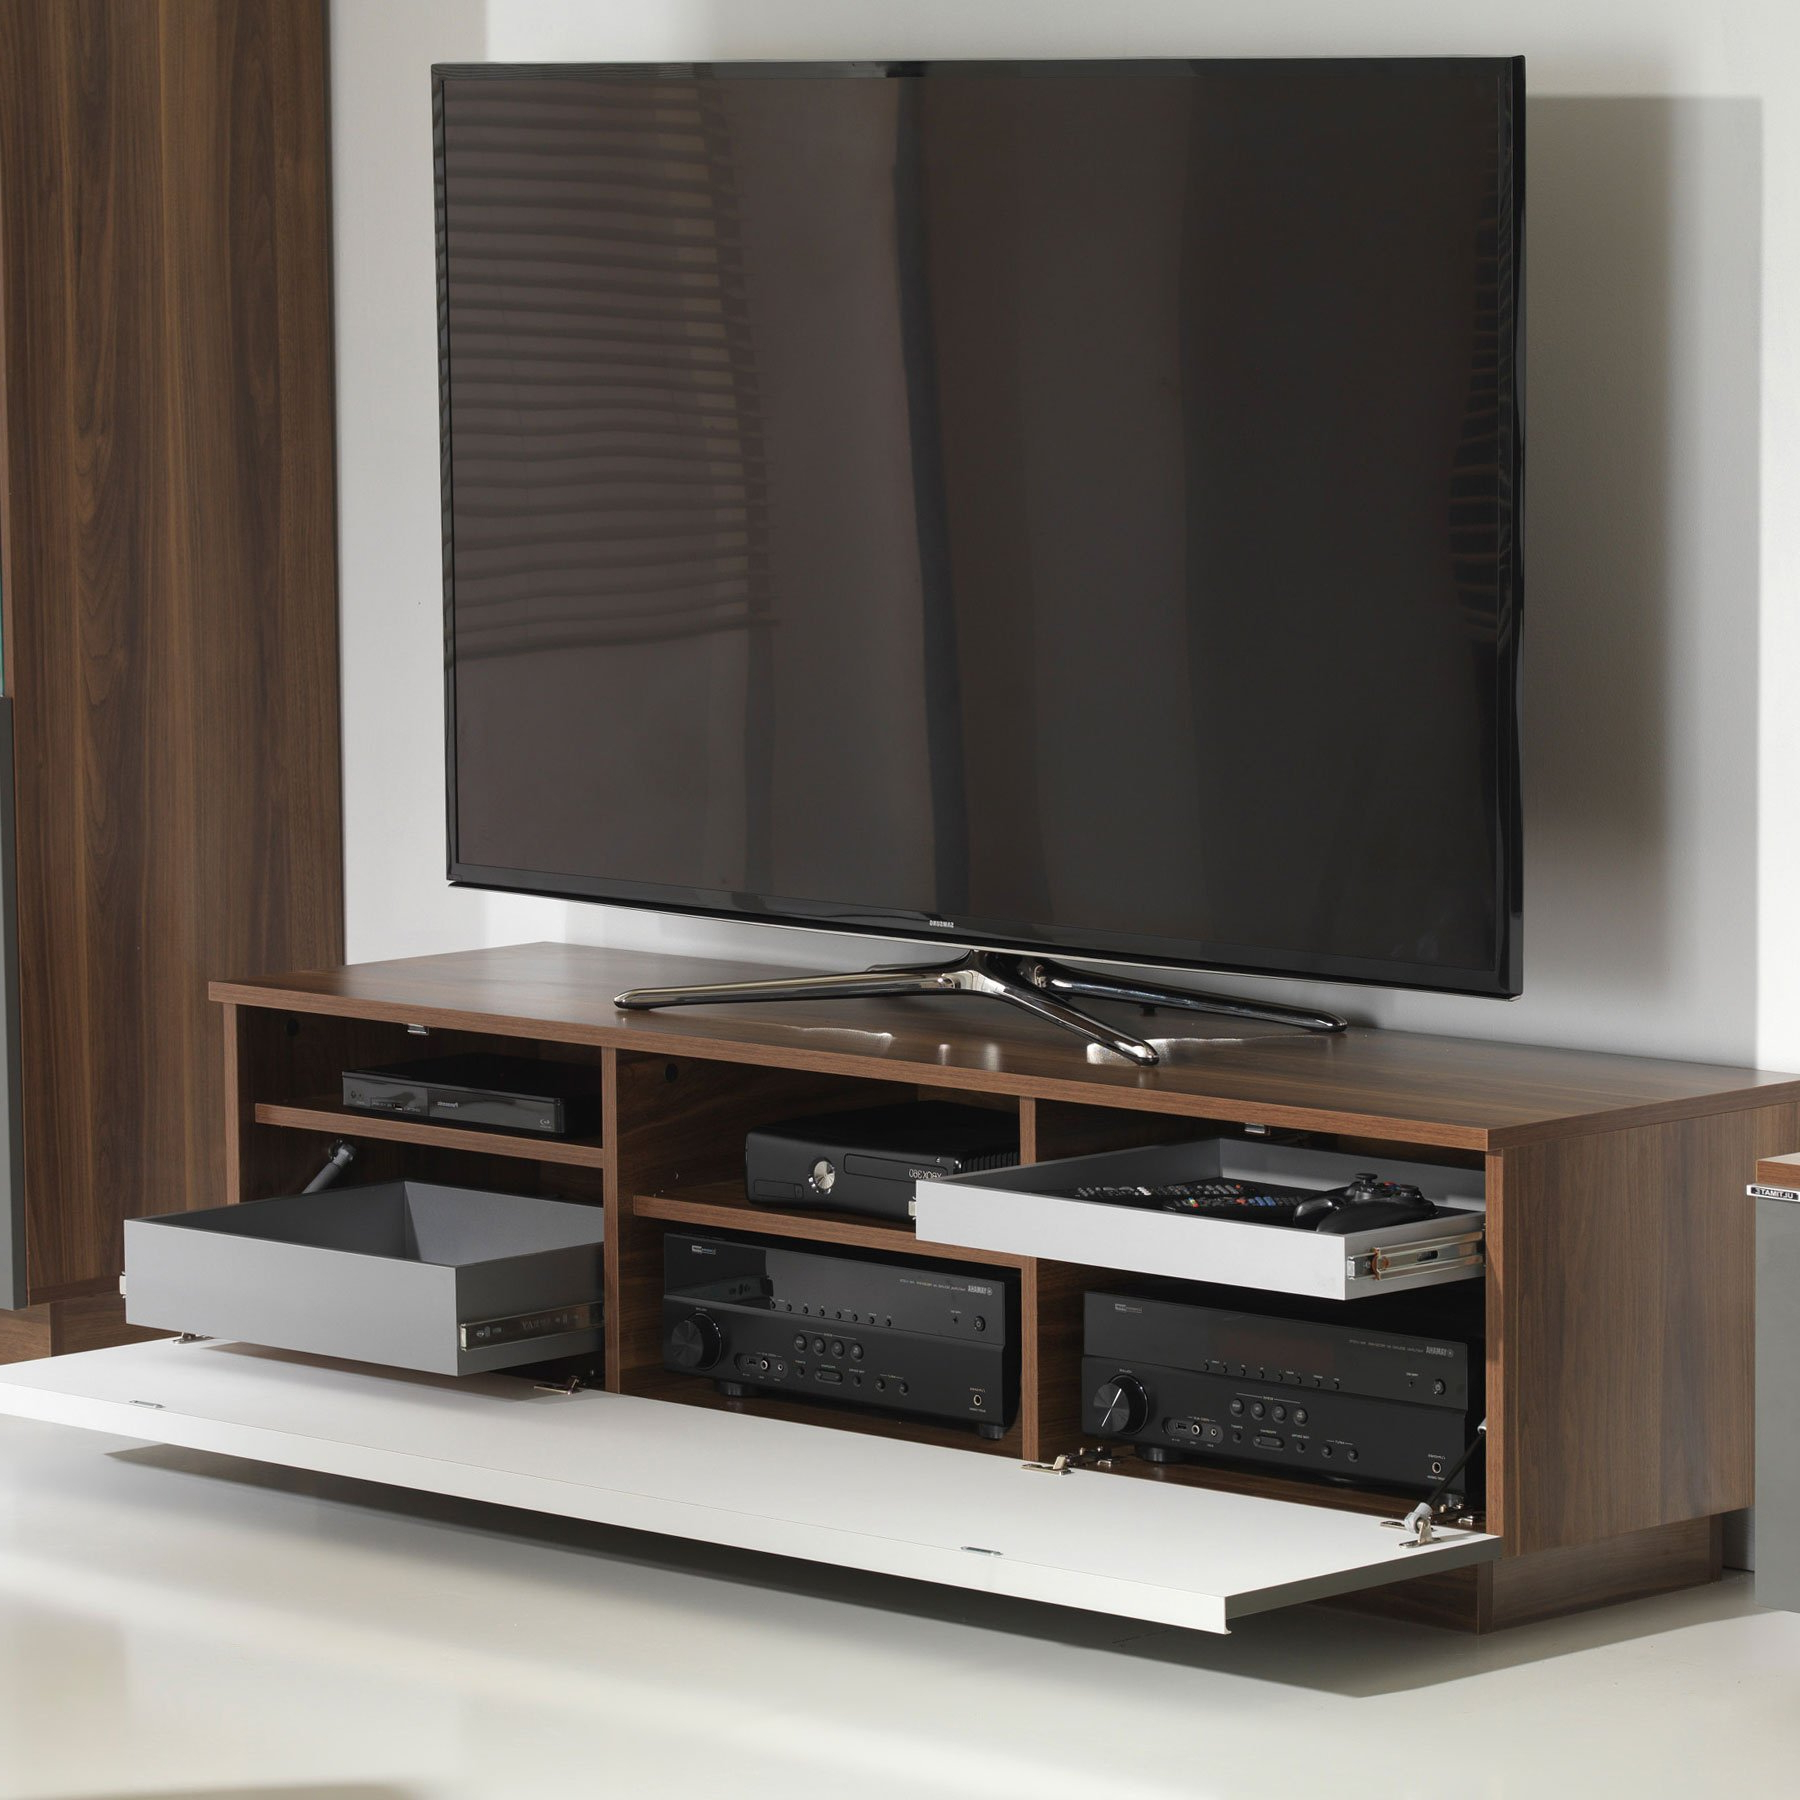 """Well Known Broward Tv Stands For Tvs Up To 70"""" Regarding Uk Cf Fusion 160cm Walnut And Grey Tv Stand For Up To 70"""" Tvs (View 23 of 25)"""